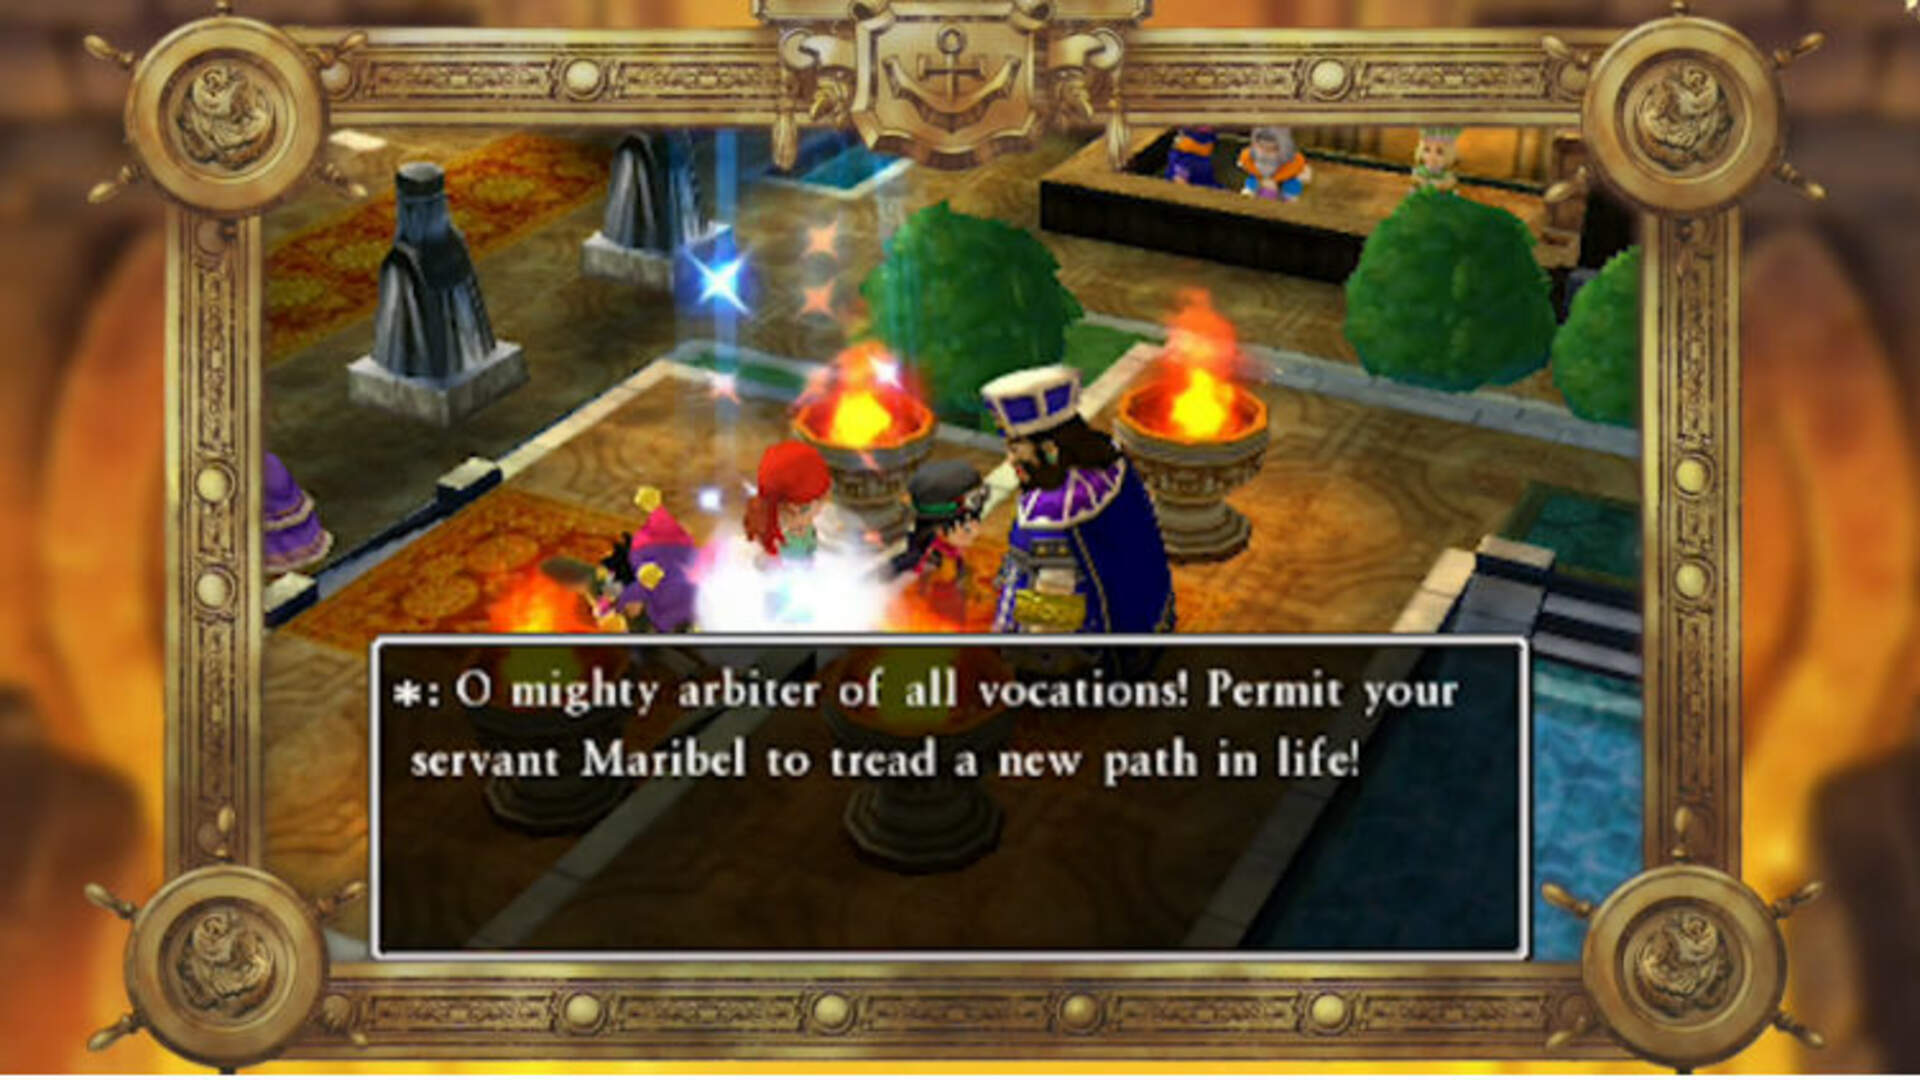 Dragon Quest 7 3DS Sage Guide: Spells, Abilities, Stats, and More